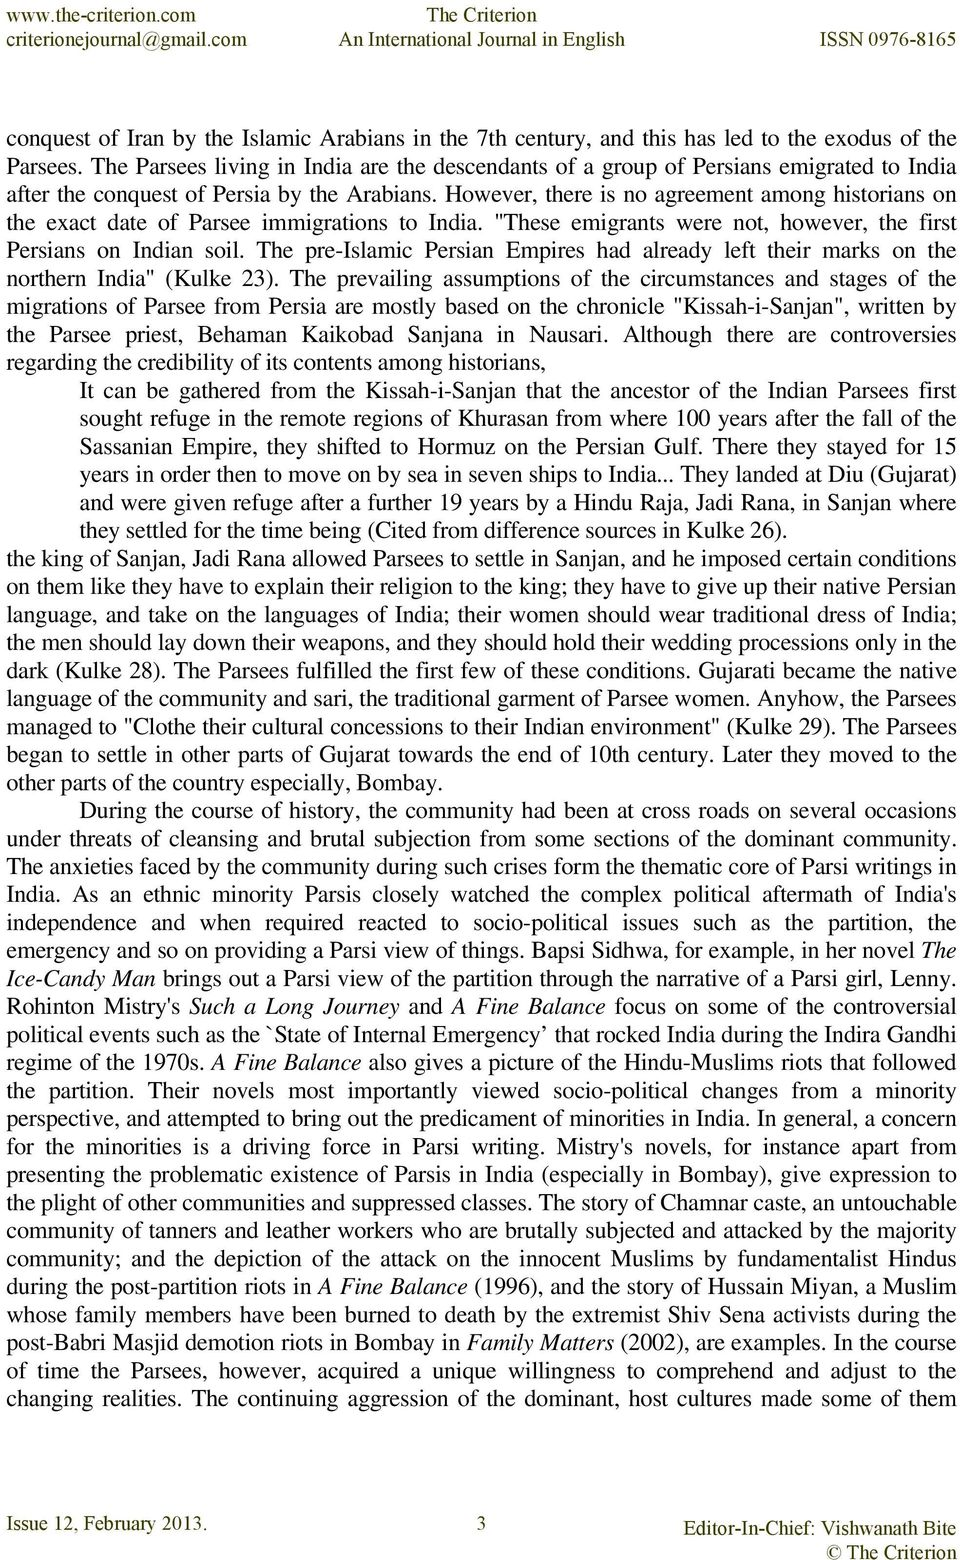 "However, there is no agreement among historians on the exact date of Parsee immigrations to India. ""These emigrants were not, however, the first Persians on Indian soil."